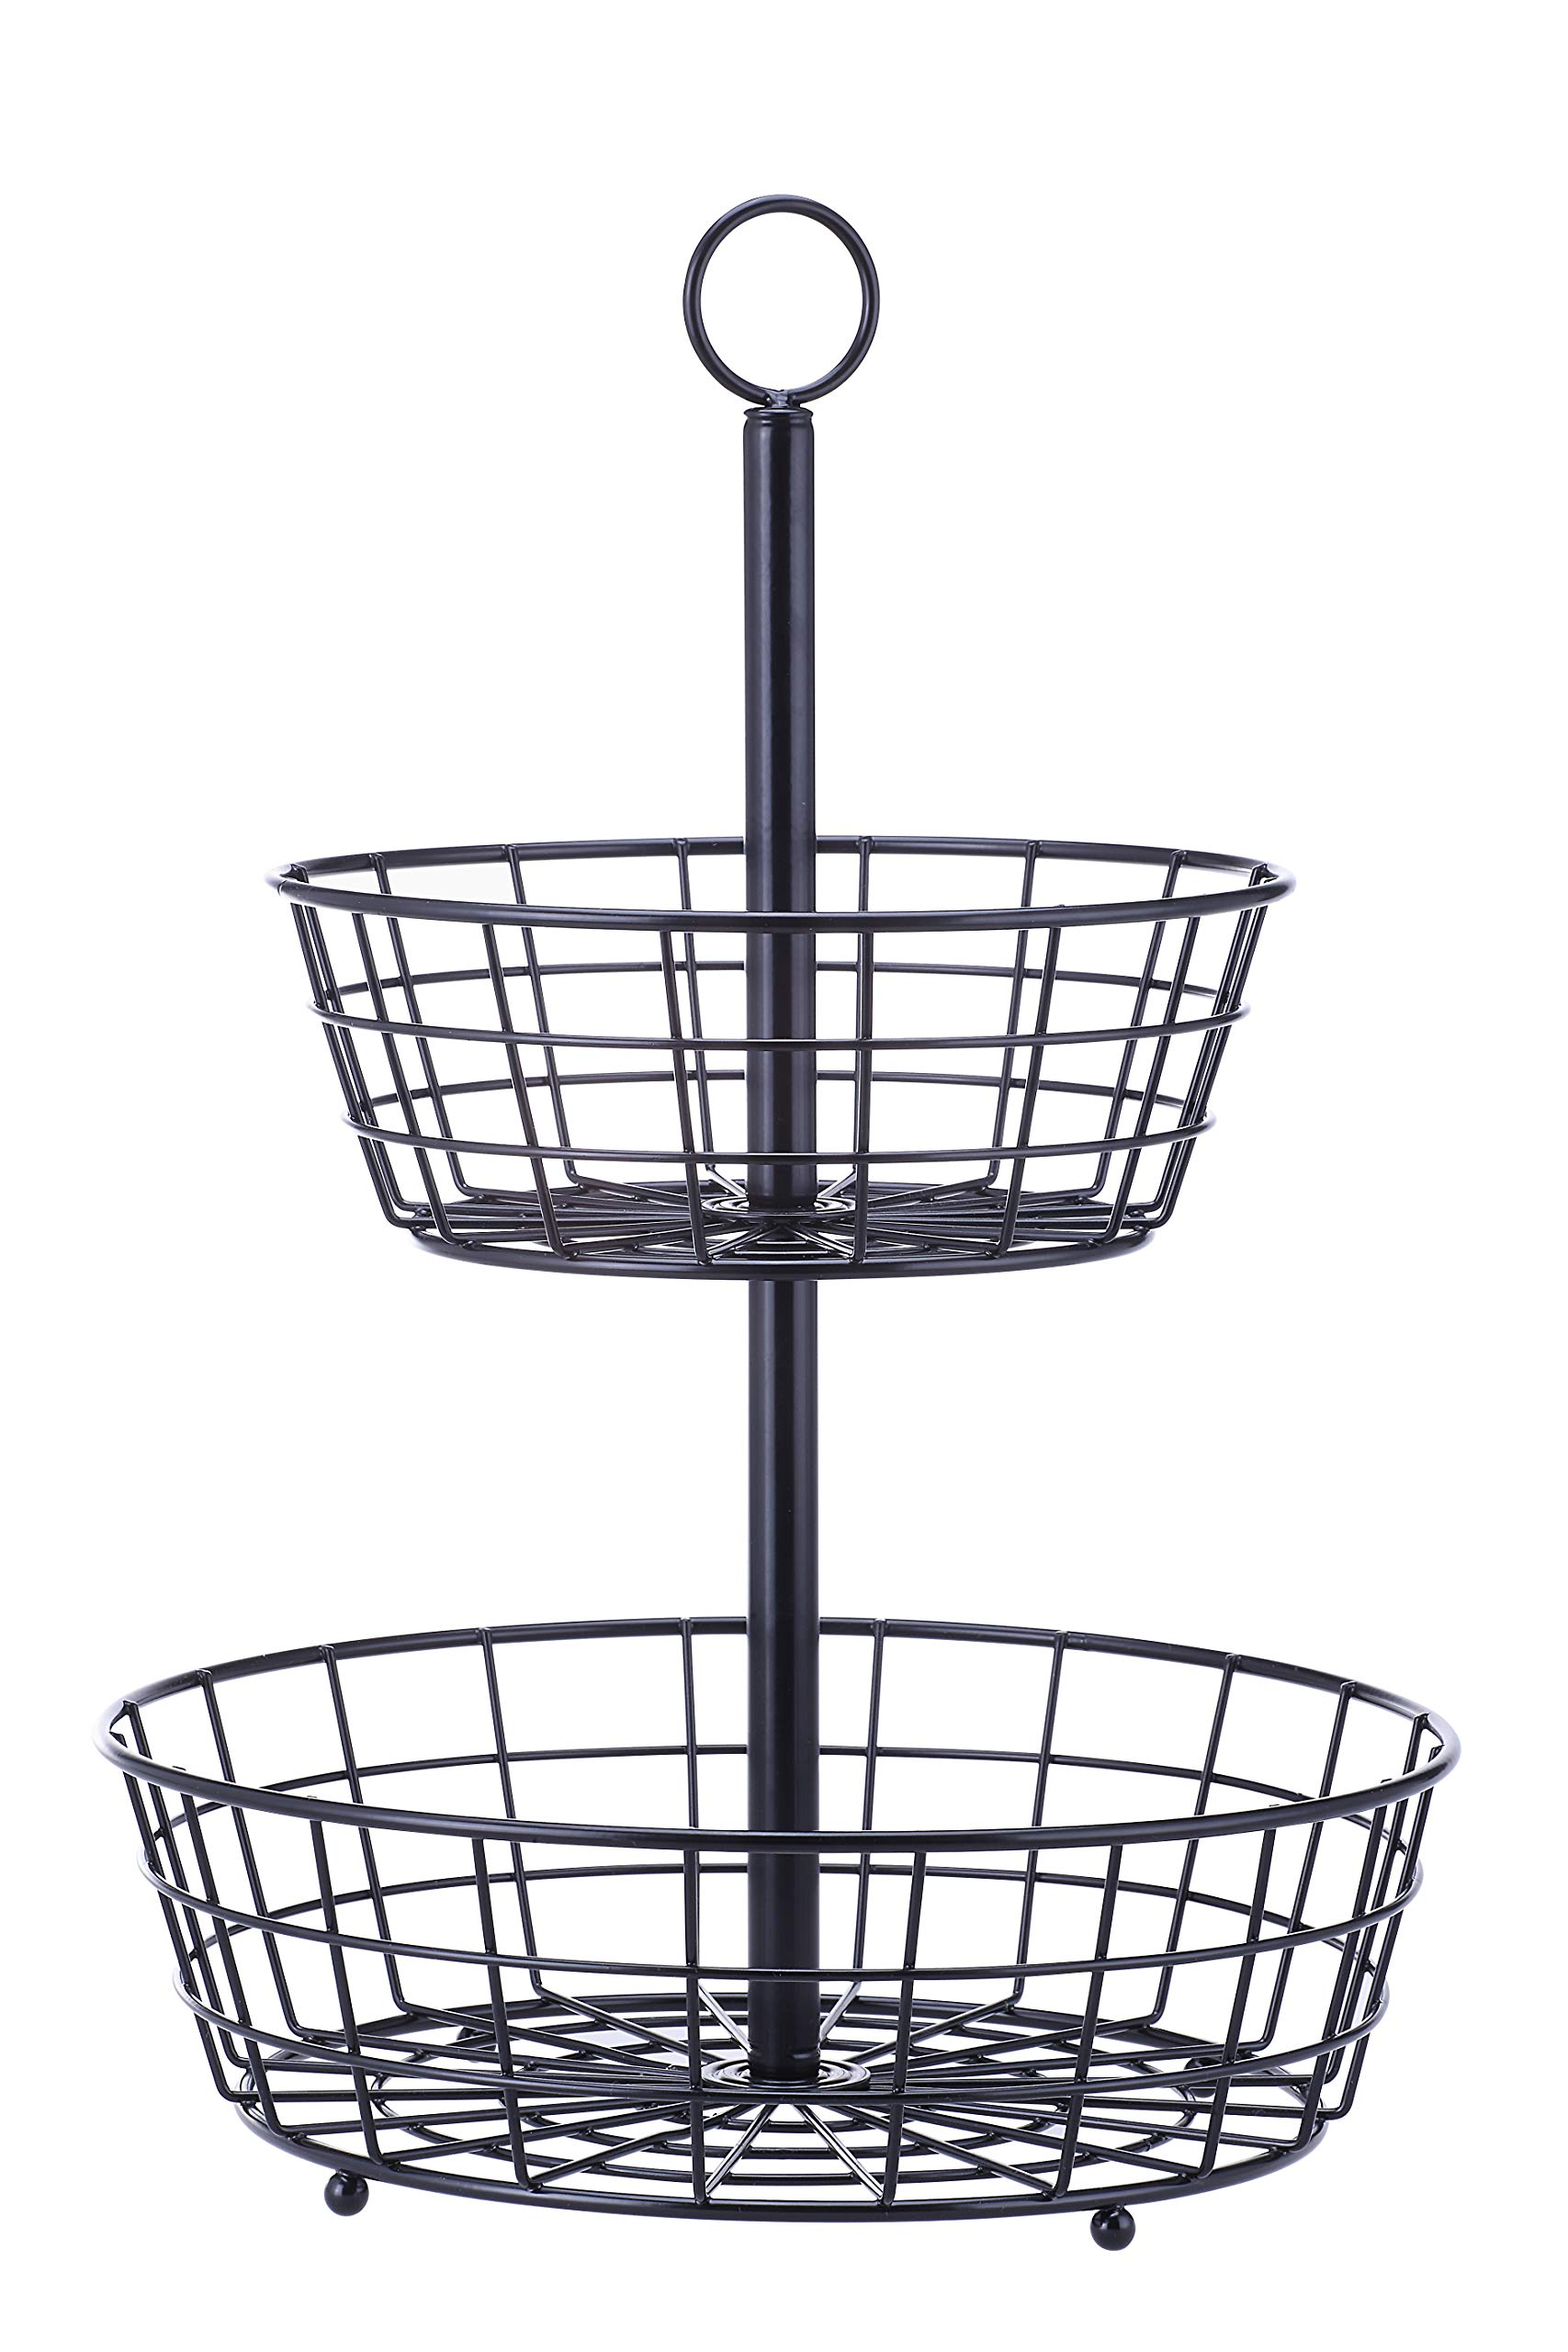 SunnyPoint Tabletop 2-Tier Countertop Fruit Basket Stand by SunnyPoint (Image #4)